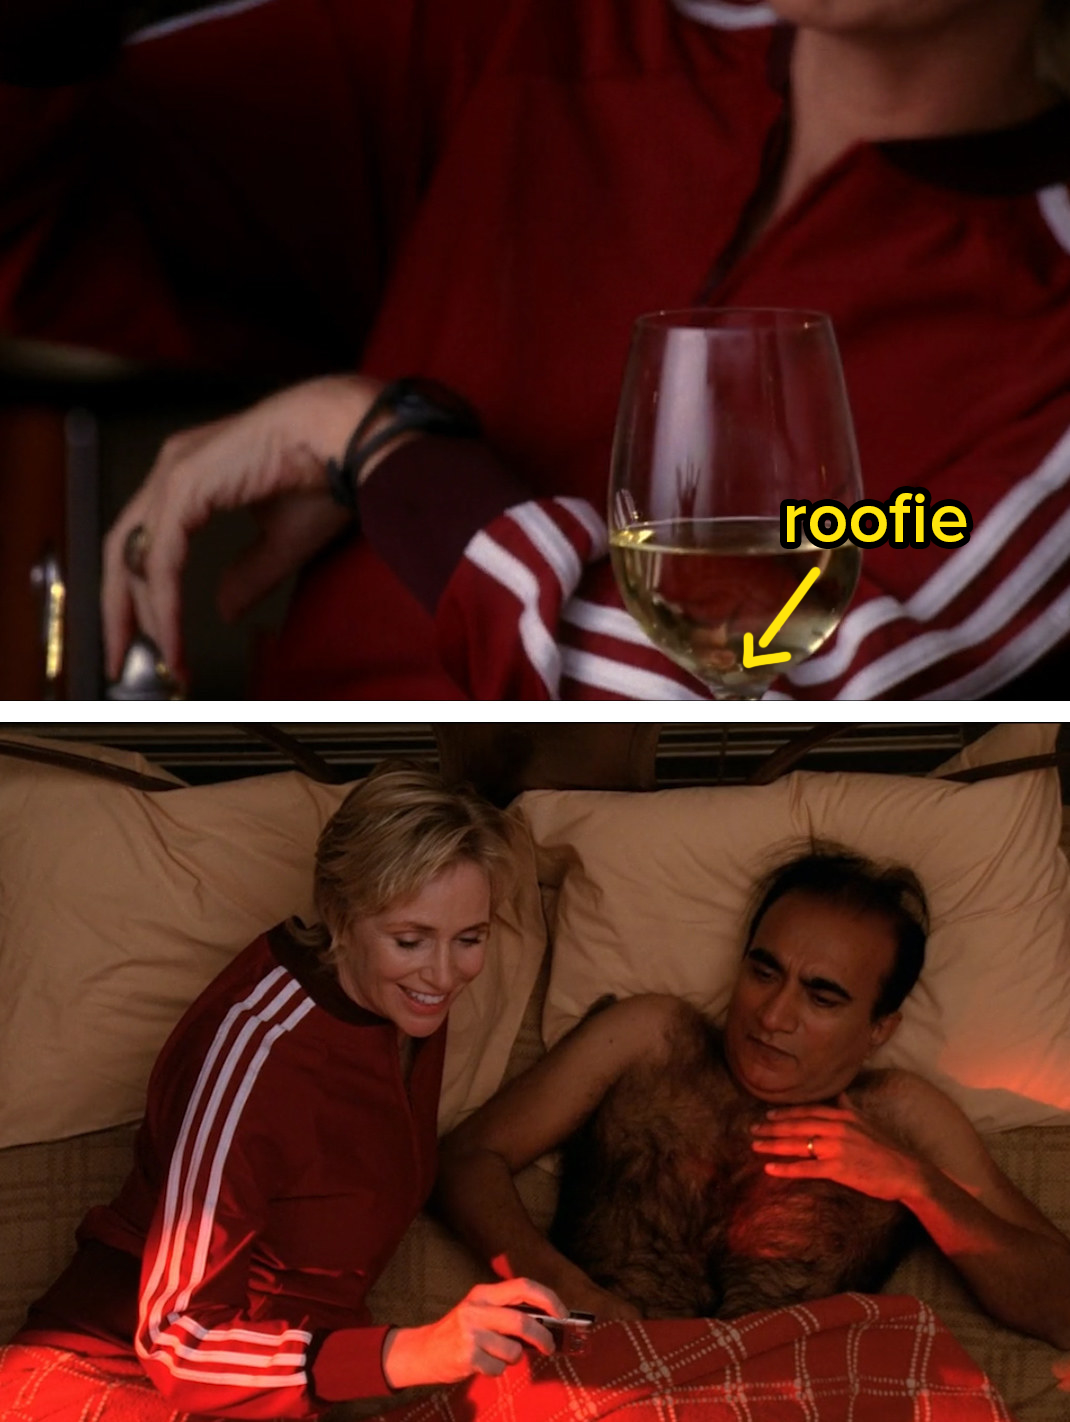 Sue posing with Principal Figgins in bed, with his shirt off while she's smiling